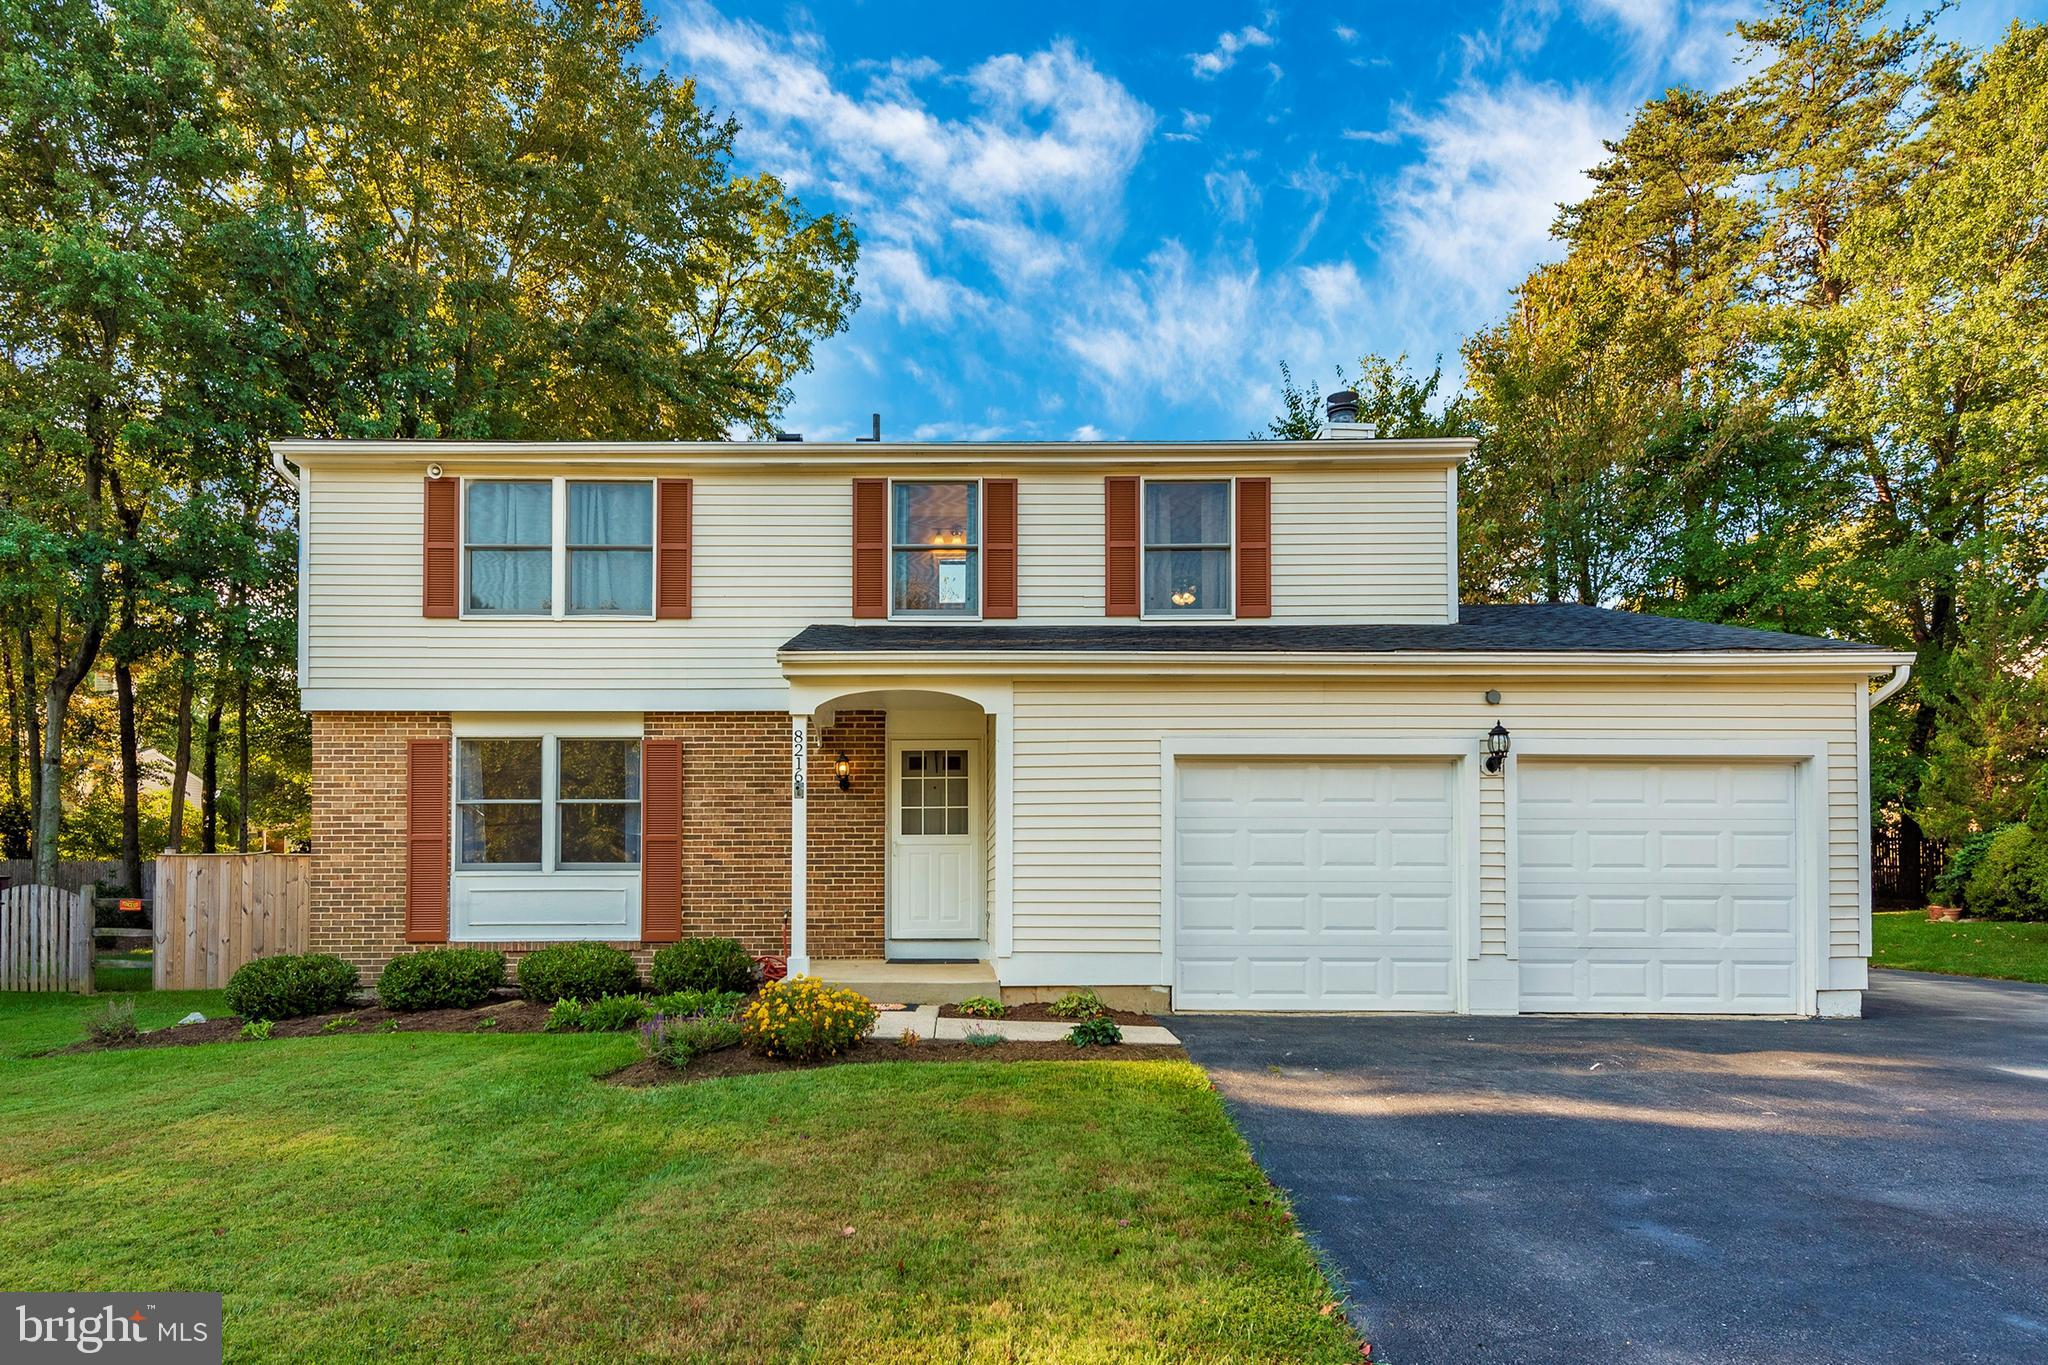 8216 LANGPORT TERRACE, GAITHERSBURG, MD 20877